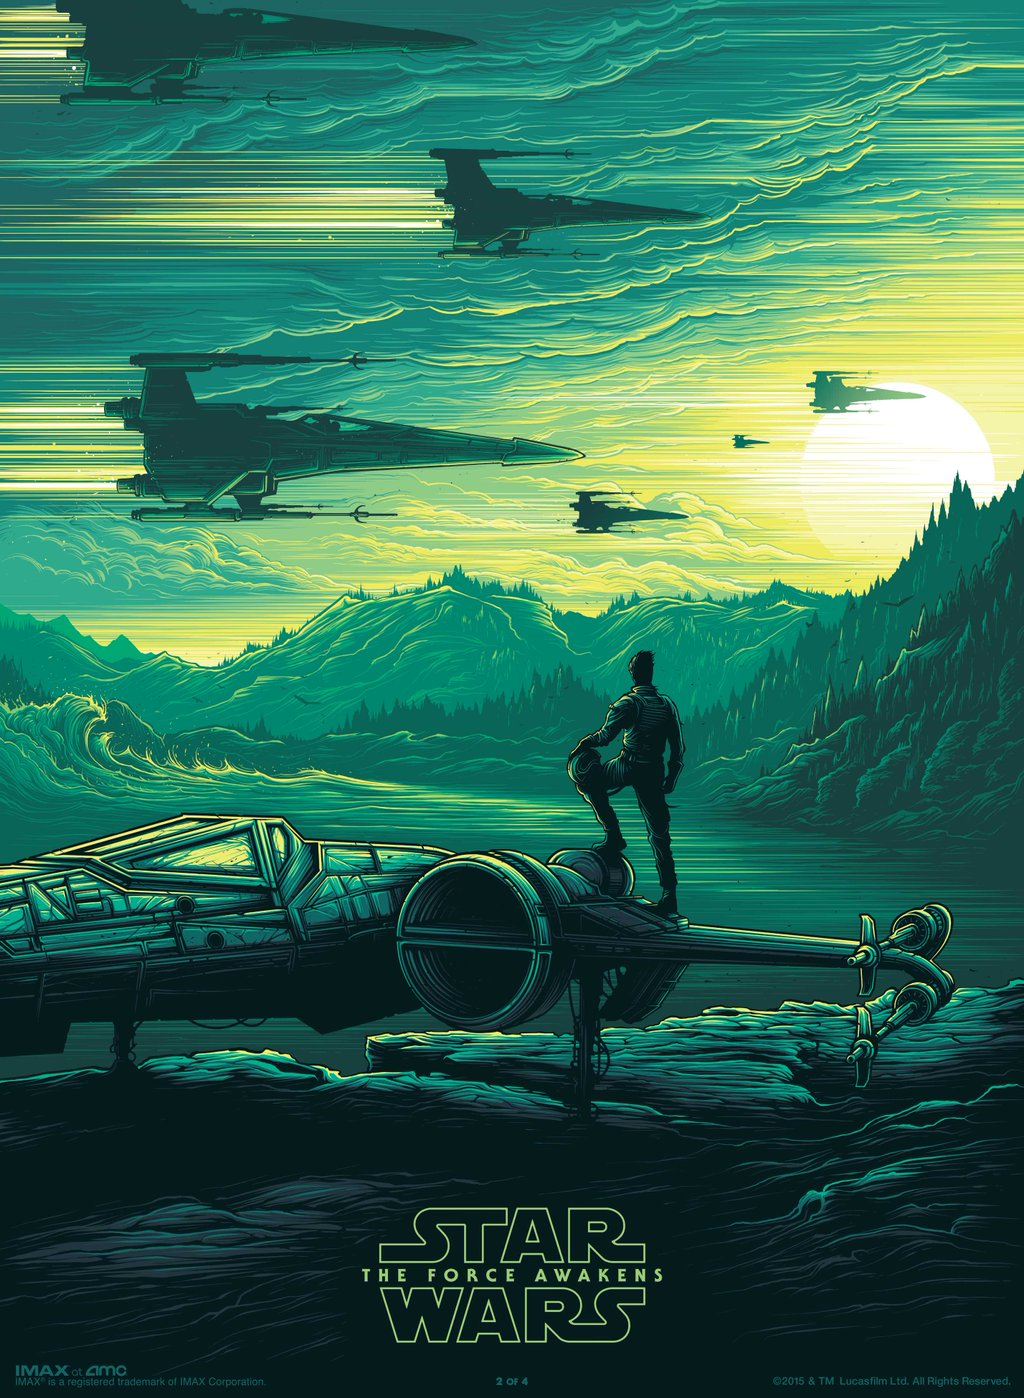 star wars 7 new imax poster revealed get it free at amc theatres this weekend. Black Bedroom Furniture Sets. Home Design Ideas